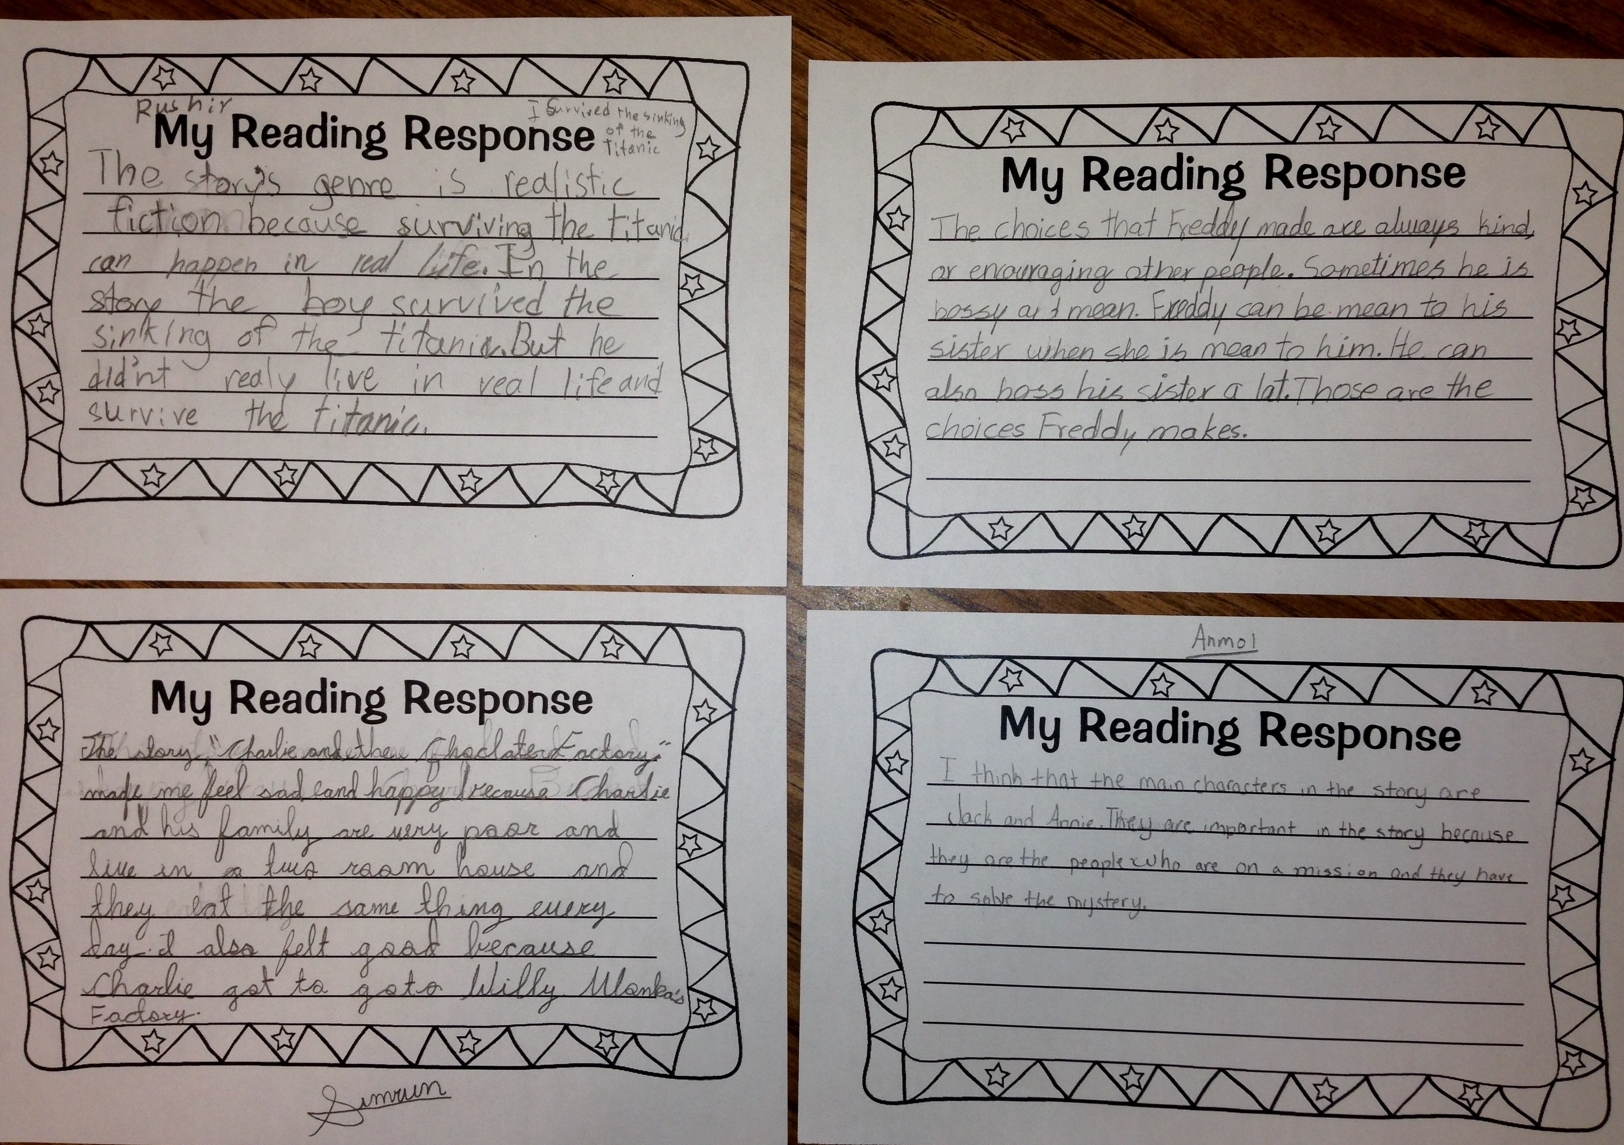 Worksheets Guided Reading Worksheets guided reading prompts and questions to improve comprehension response prompts